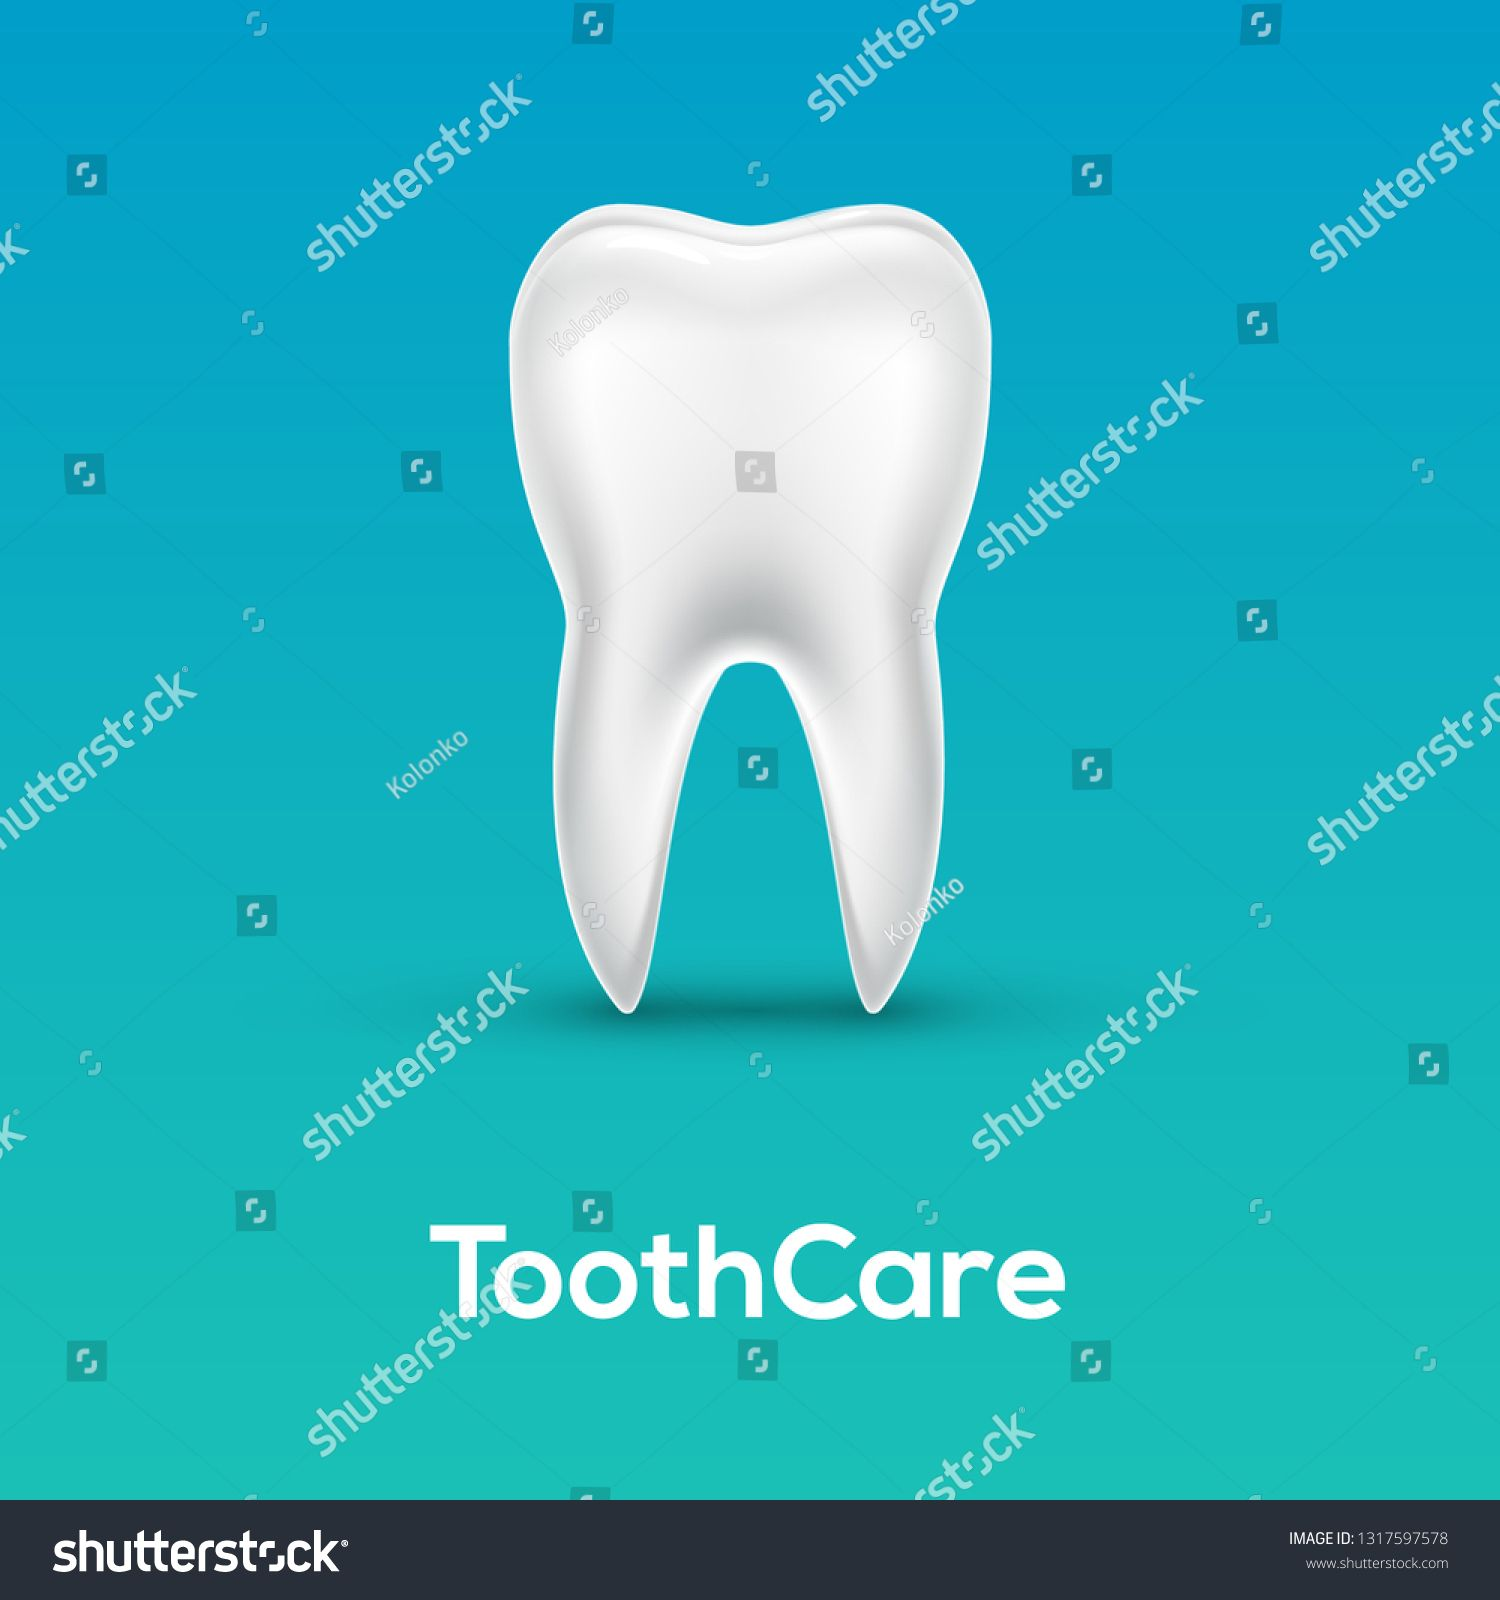 Tooth Care Dental Icon Vector Healthy Dentist Background Blue Clean Tooth Bright White Dentistry 3d Medical Illustratio In 2020 Dental Medical Illustration Teeth Care